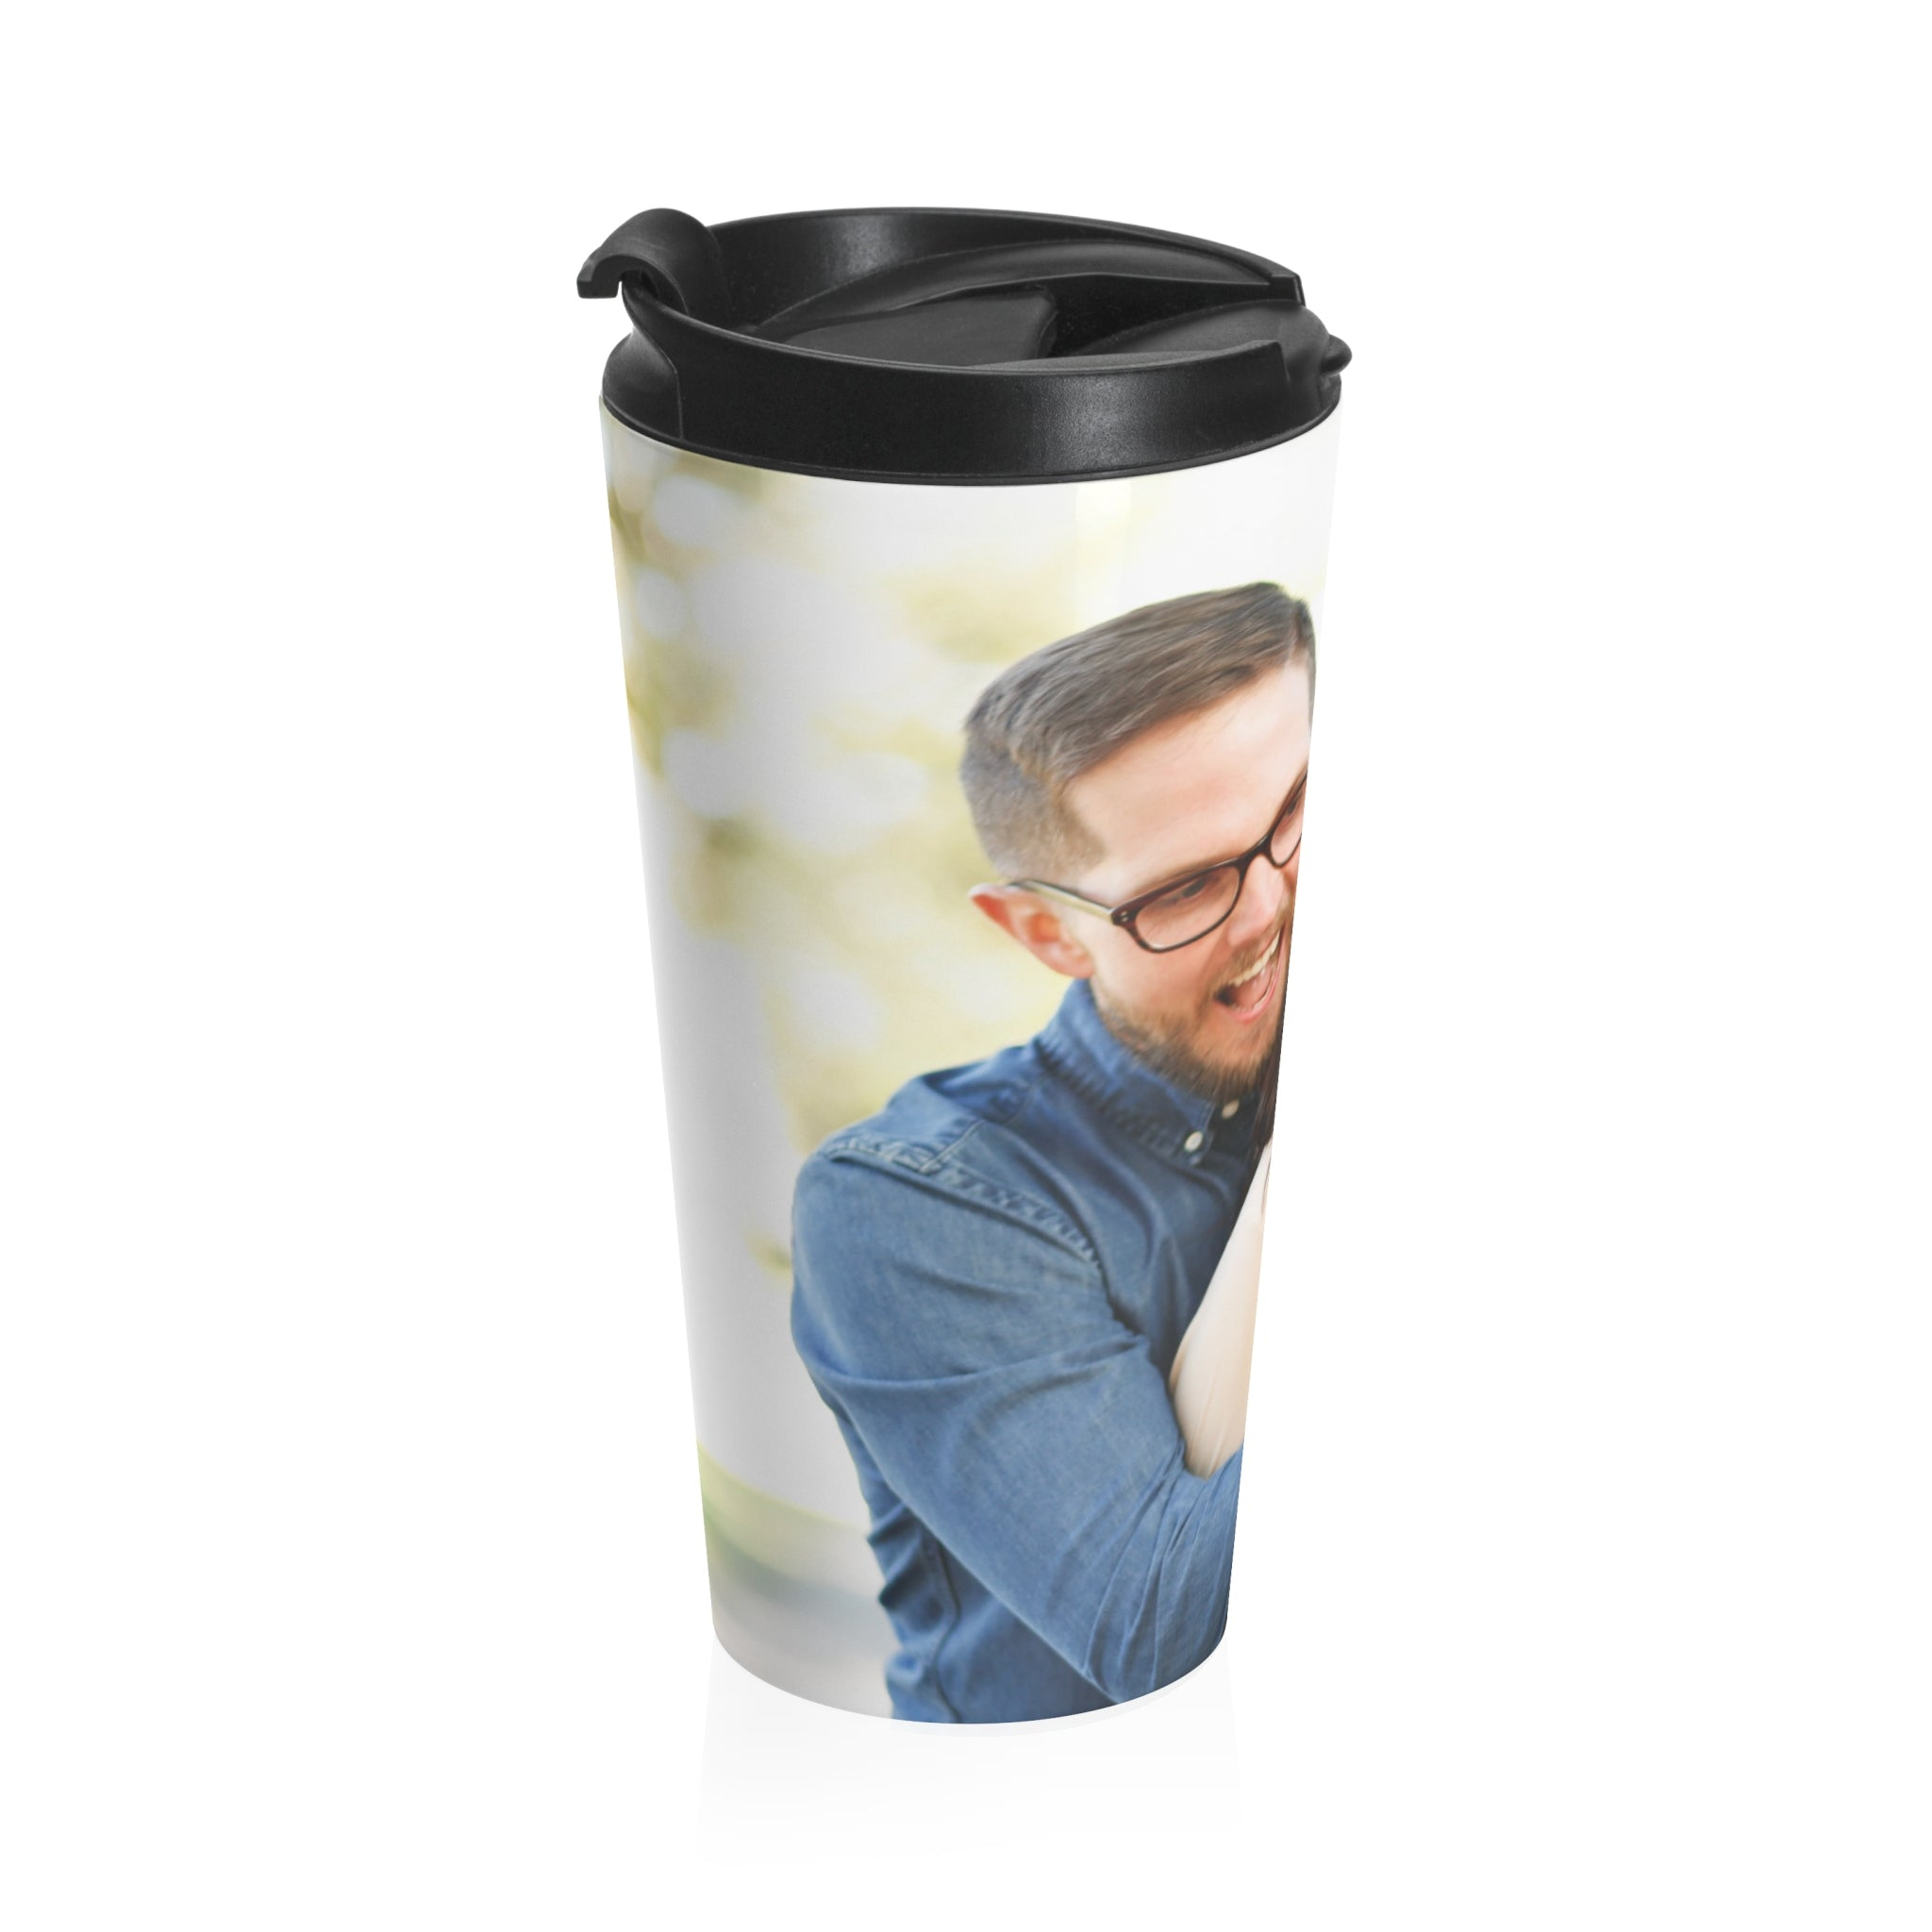 Personalized stainless steel travel mug distinct interior - Travel mug stainless steel interior ...